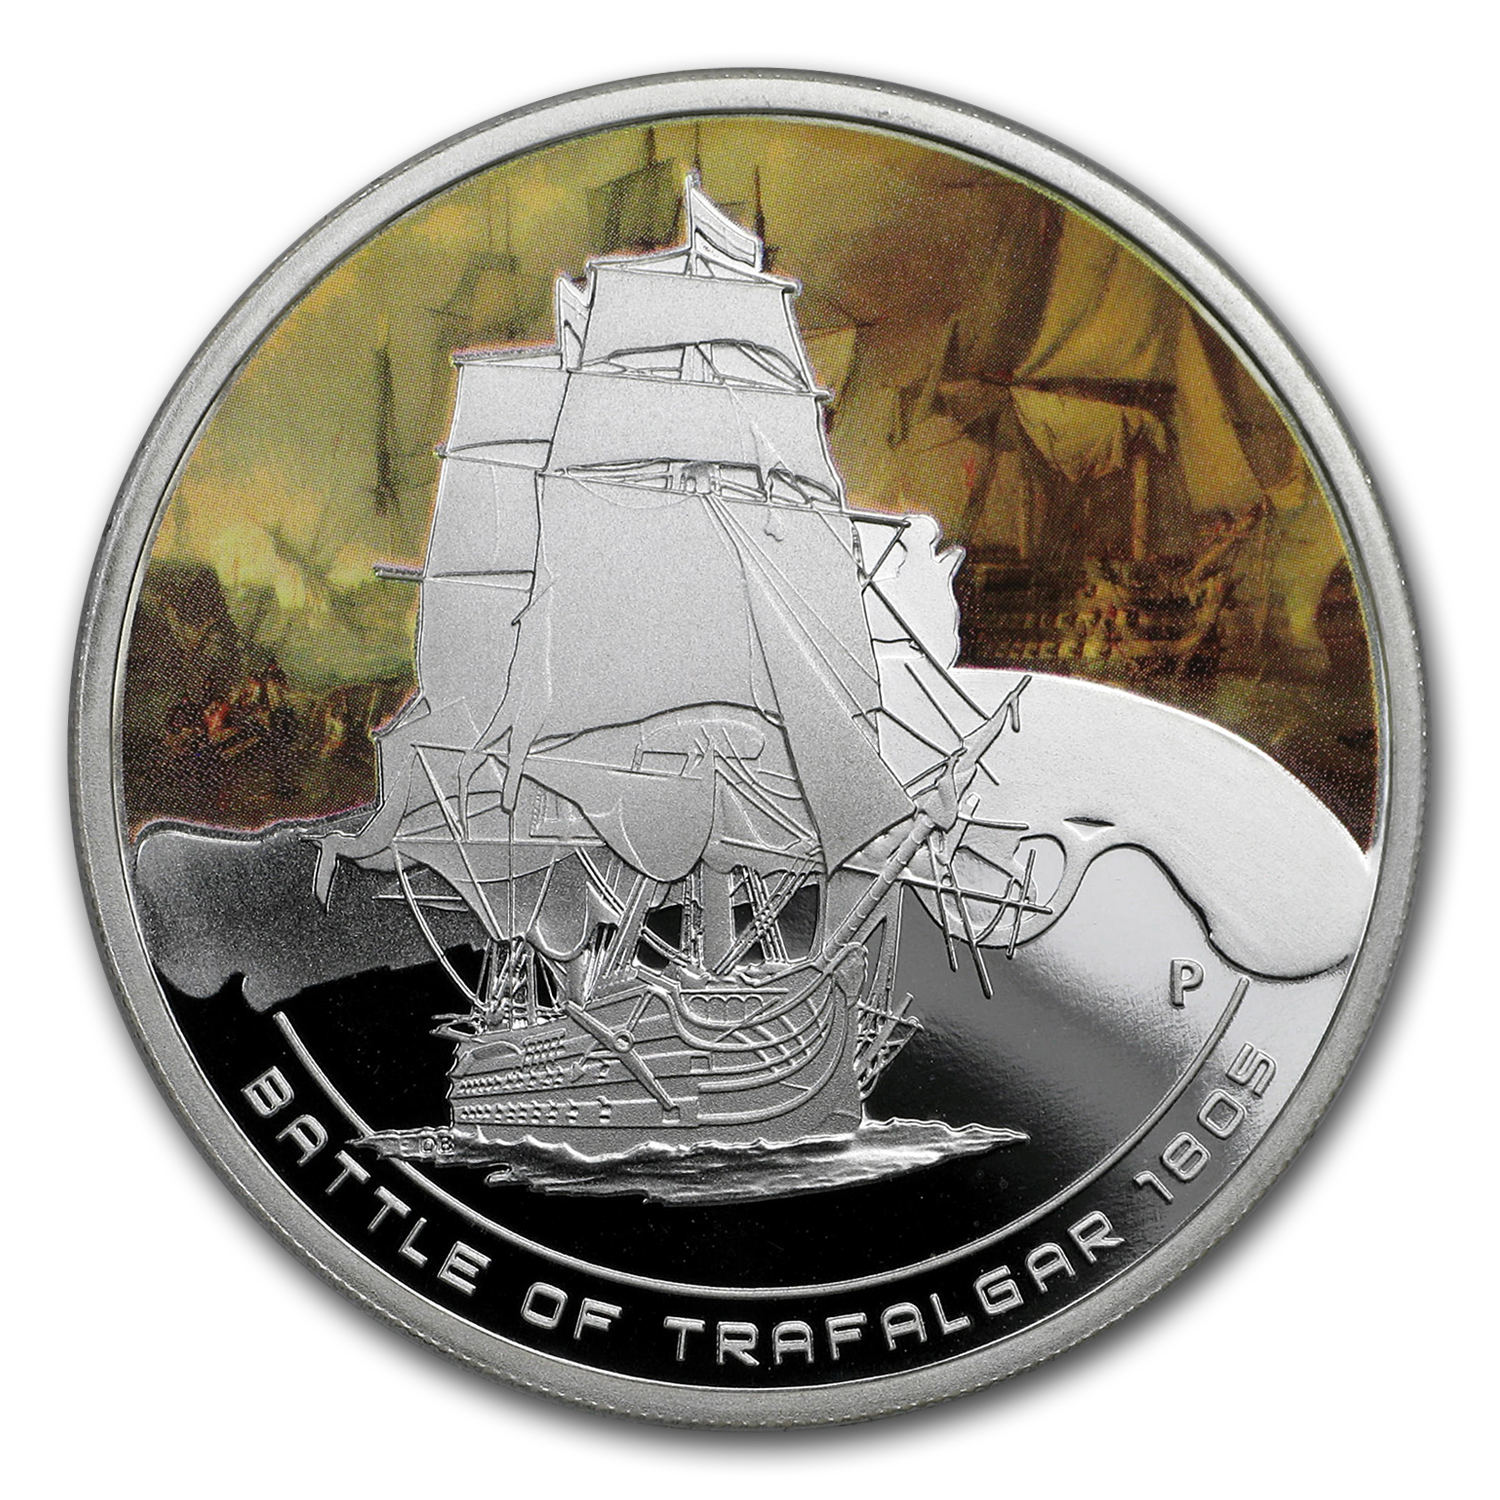 2010 1 oz Proof Silver Battle of Trafalgar Coin - Naval Battles